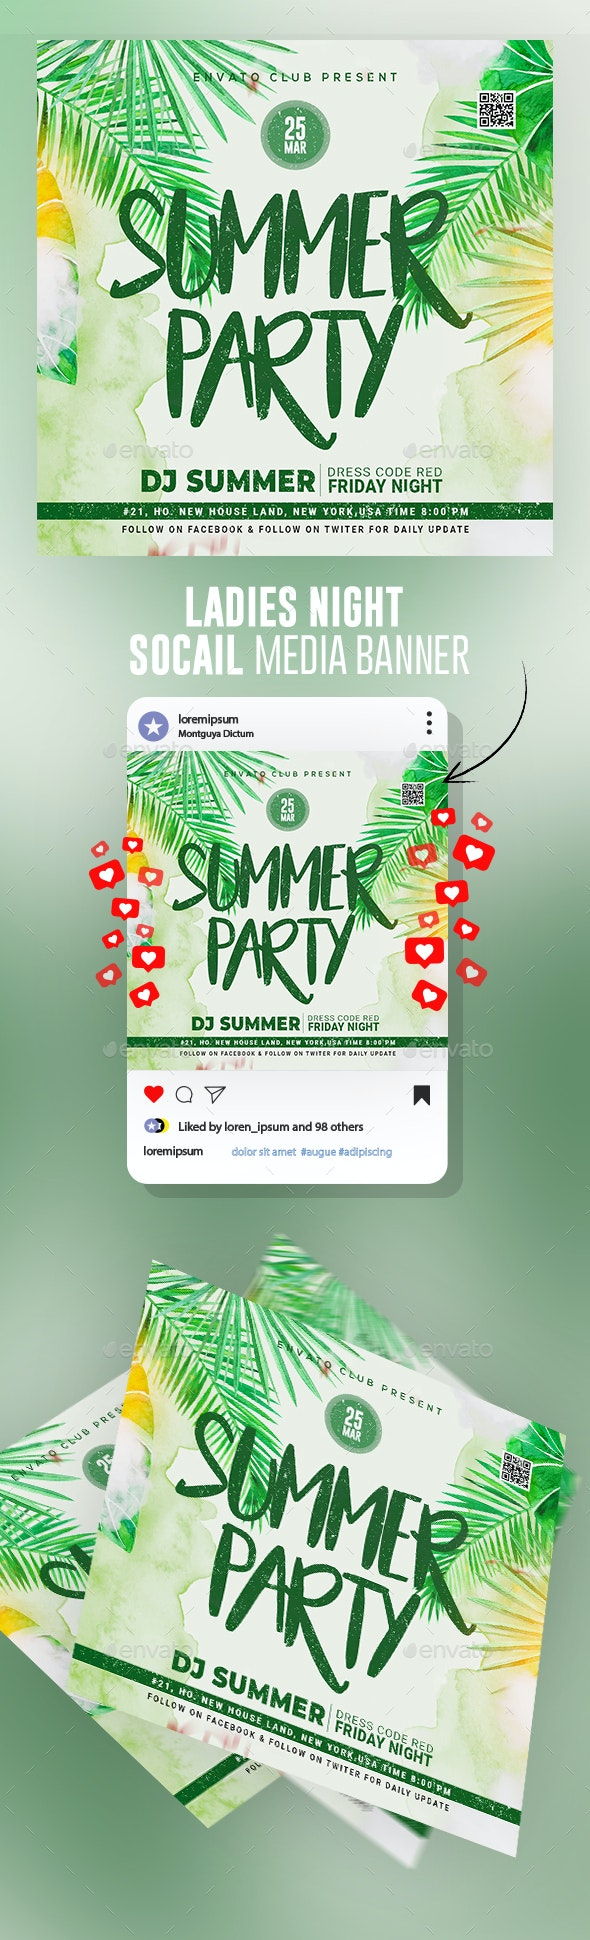 Summer Beach Party Flyer Template - Banners & Ads Web Elements